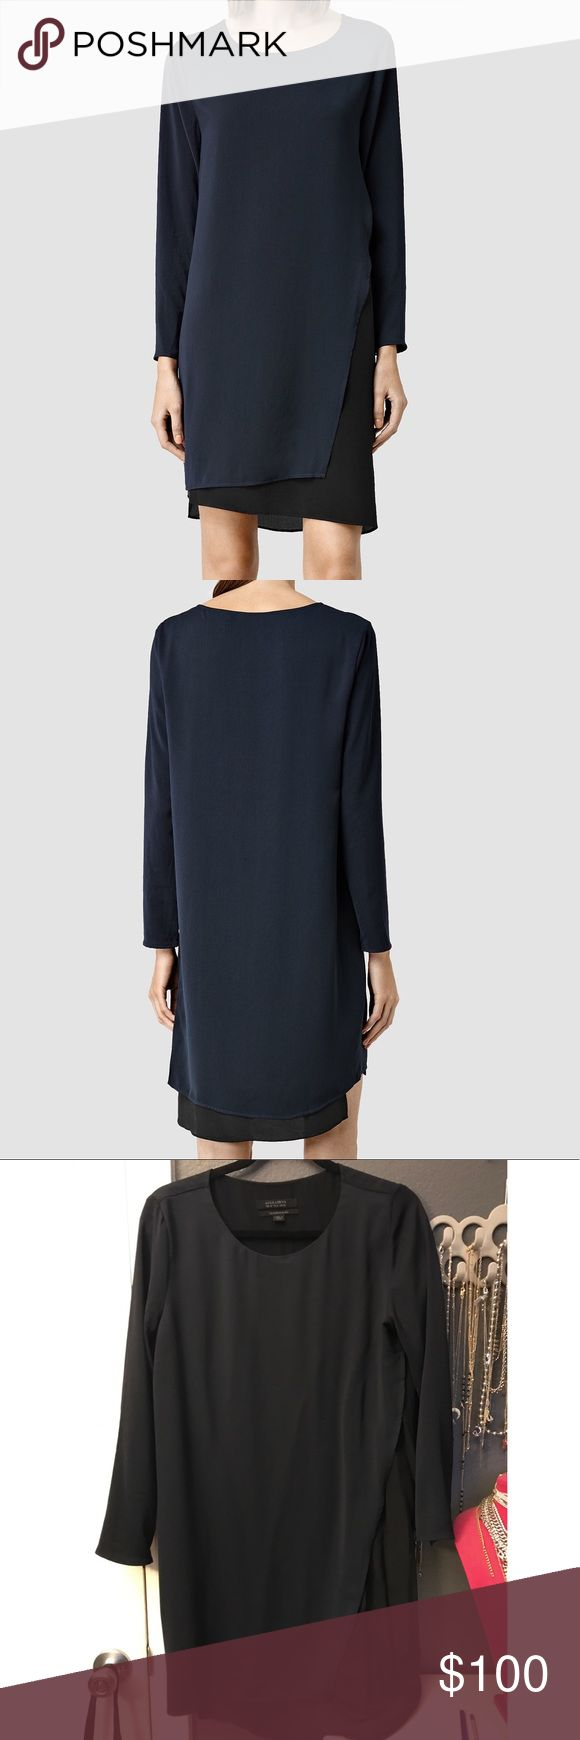 AllSaints Dress Size US 6. Long sleeve. All saints. Navy blue & blk. Shows small signs of wear. Nothing drastic All Saints Dresses Midi